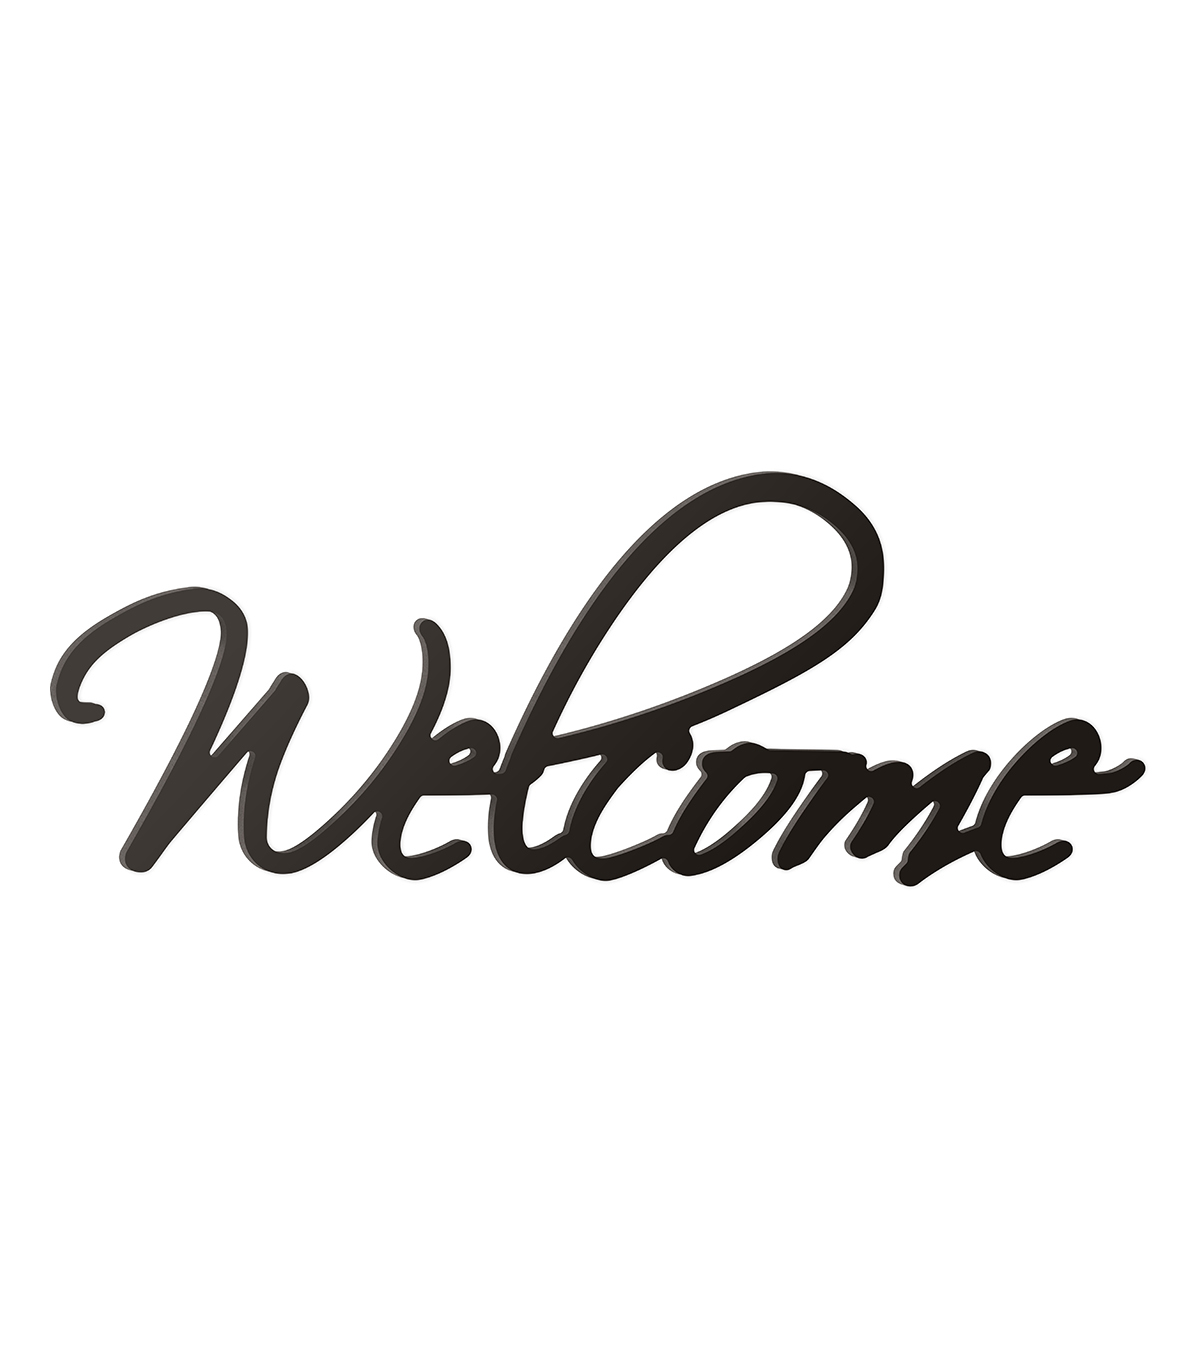 Word Wall Decor-Welcome